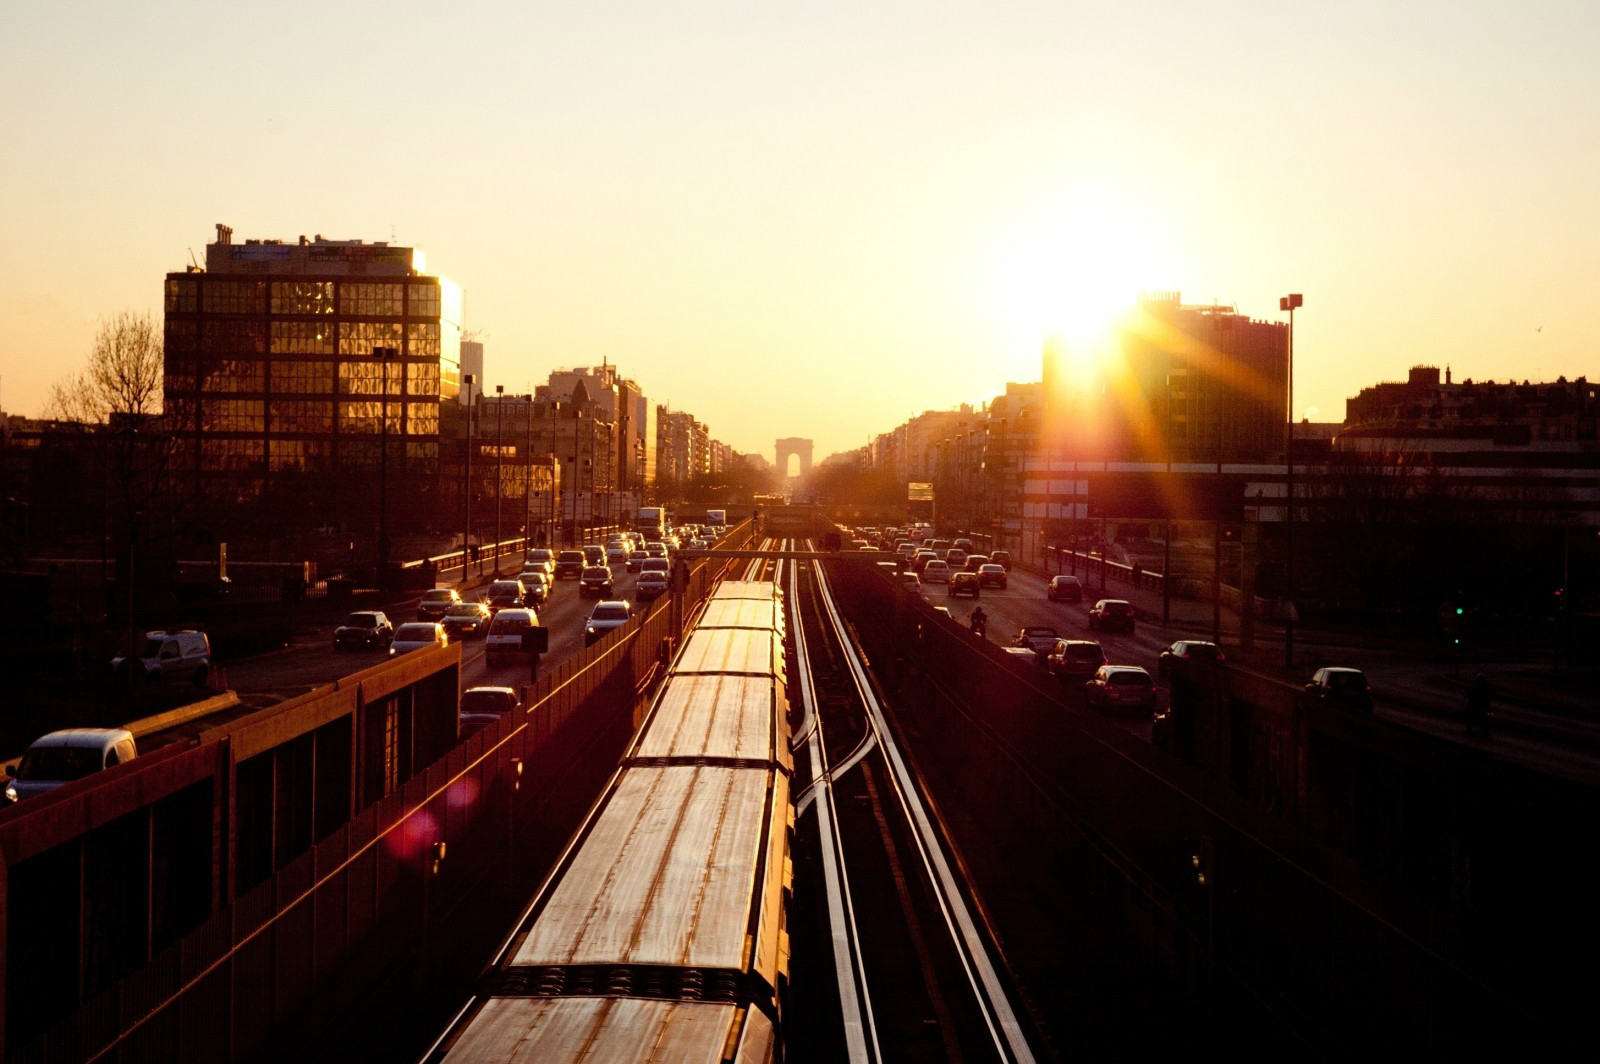 The sun sets over a train speeding through a busy city centre.